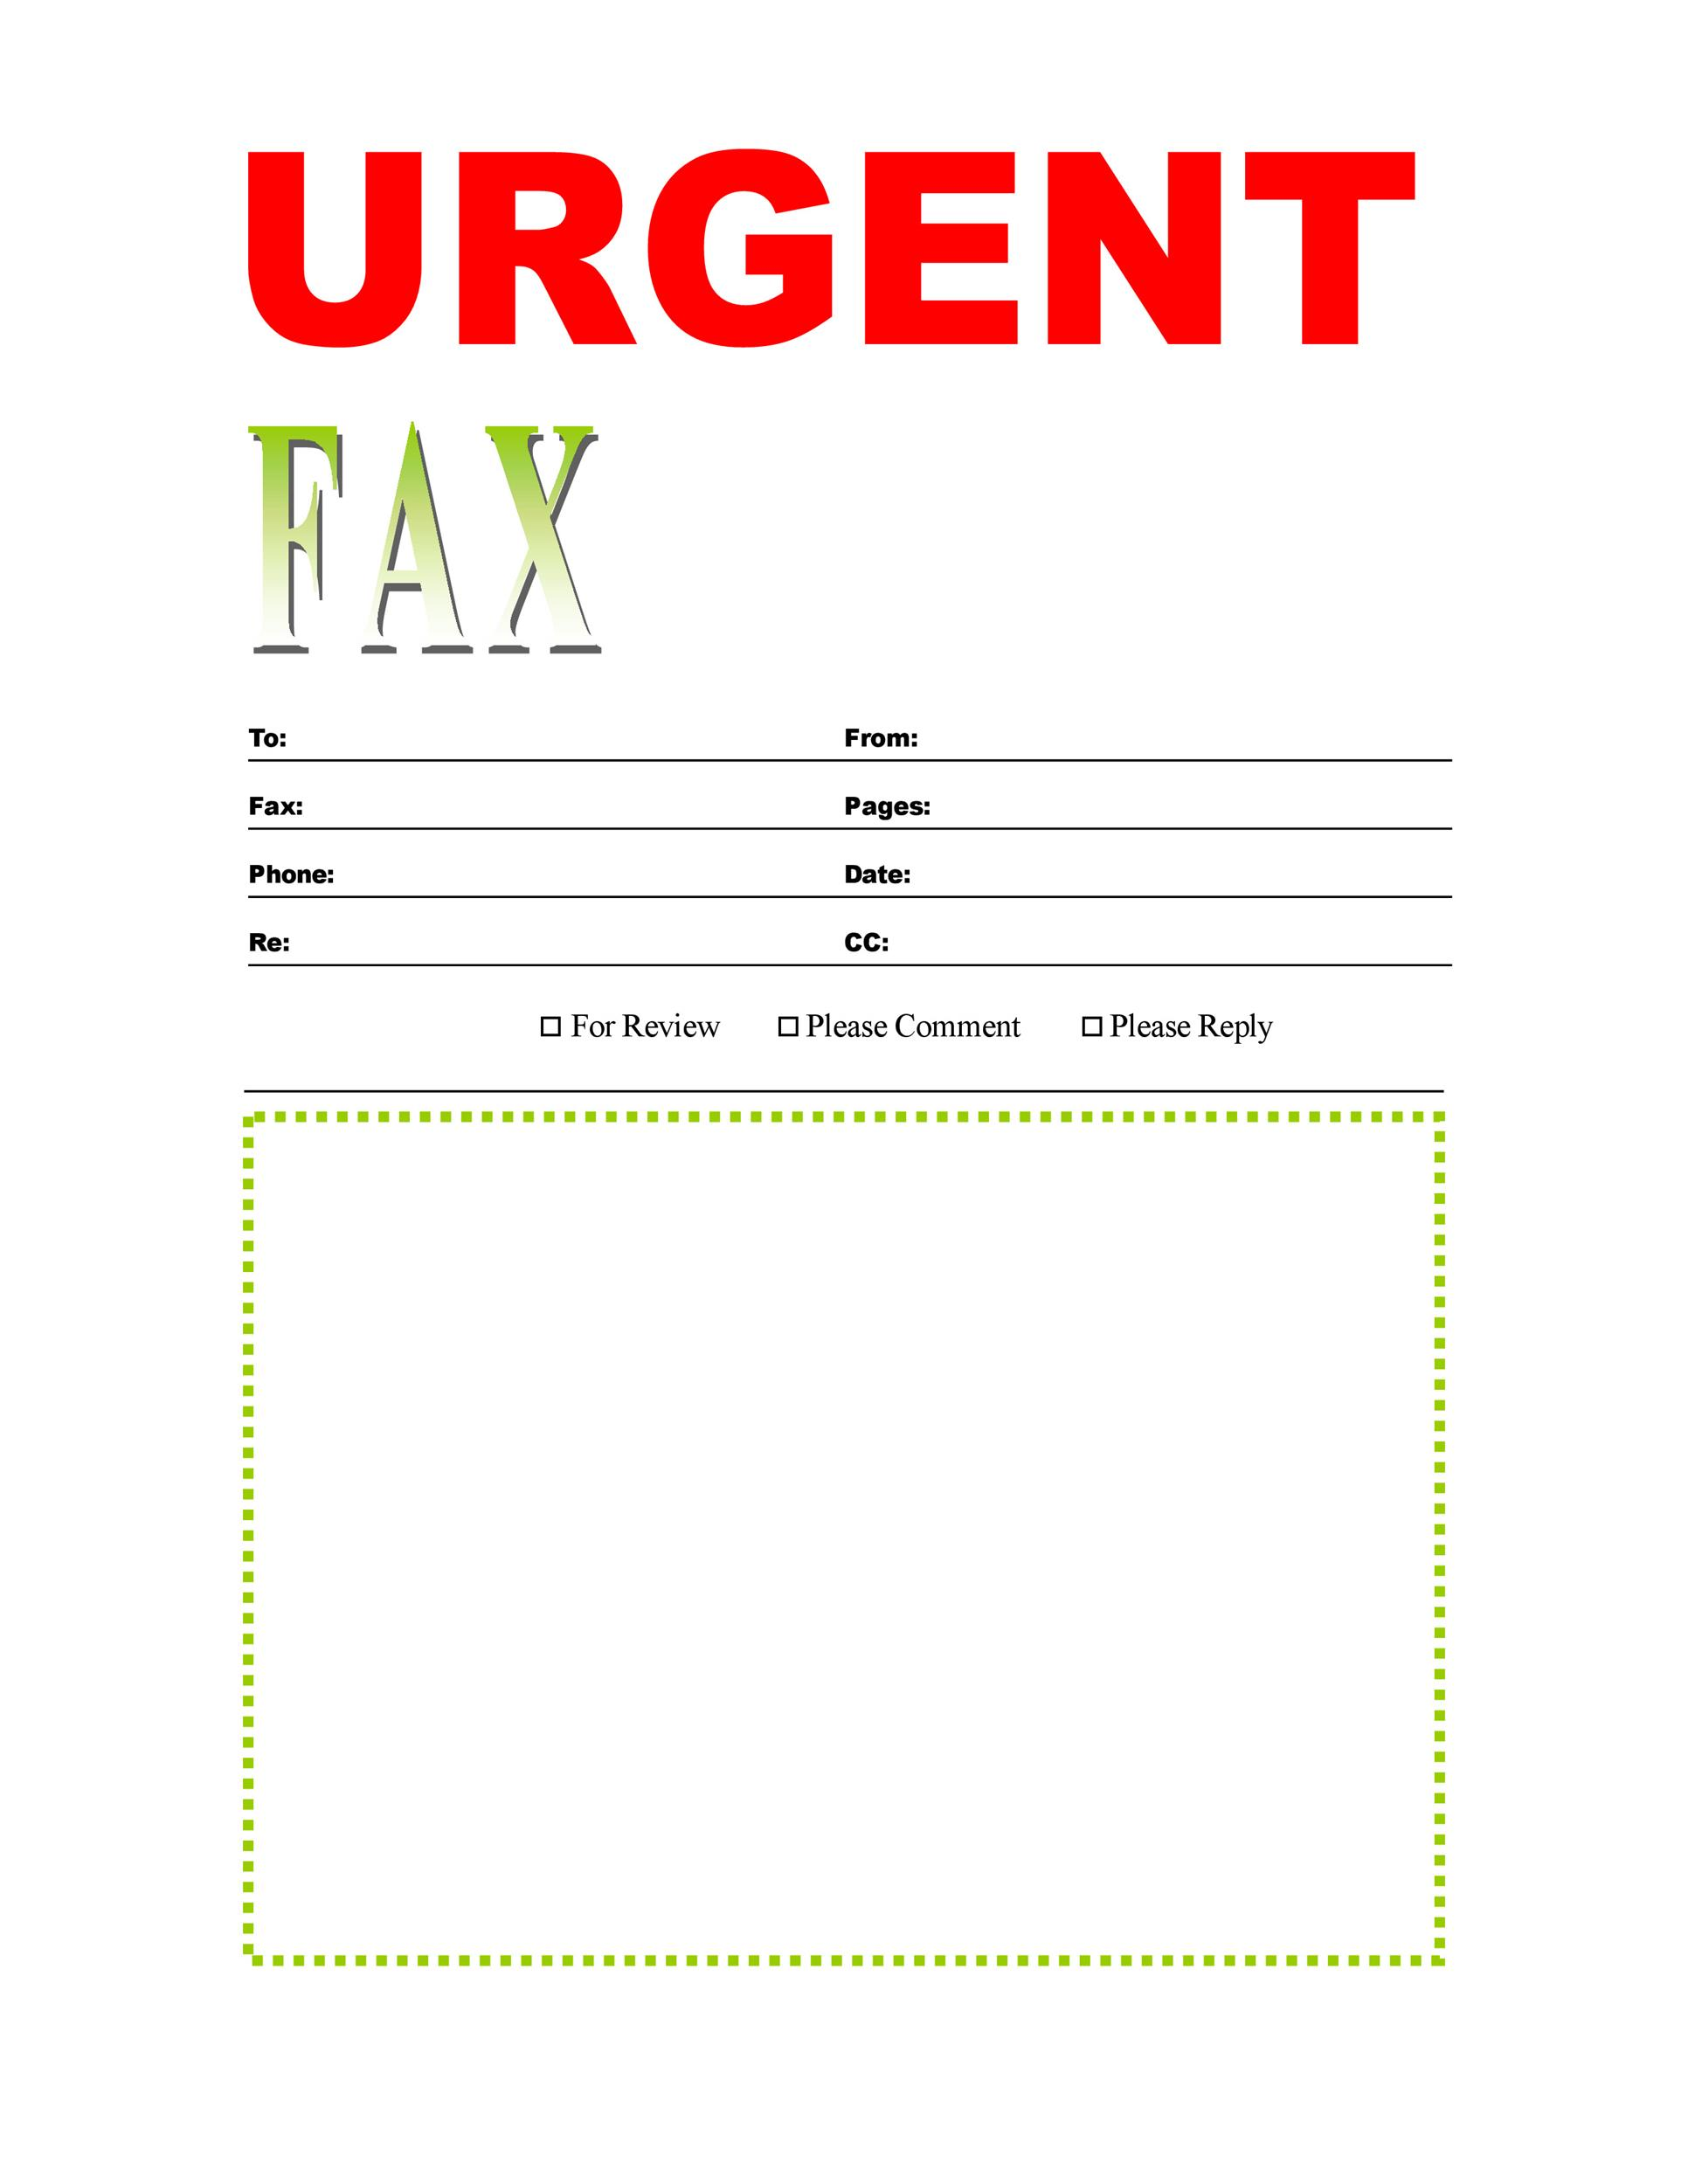 Printable Fax Cover Sheet Template 08  Fax Sheet Template